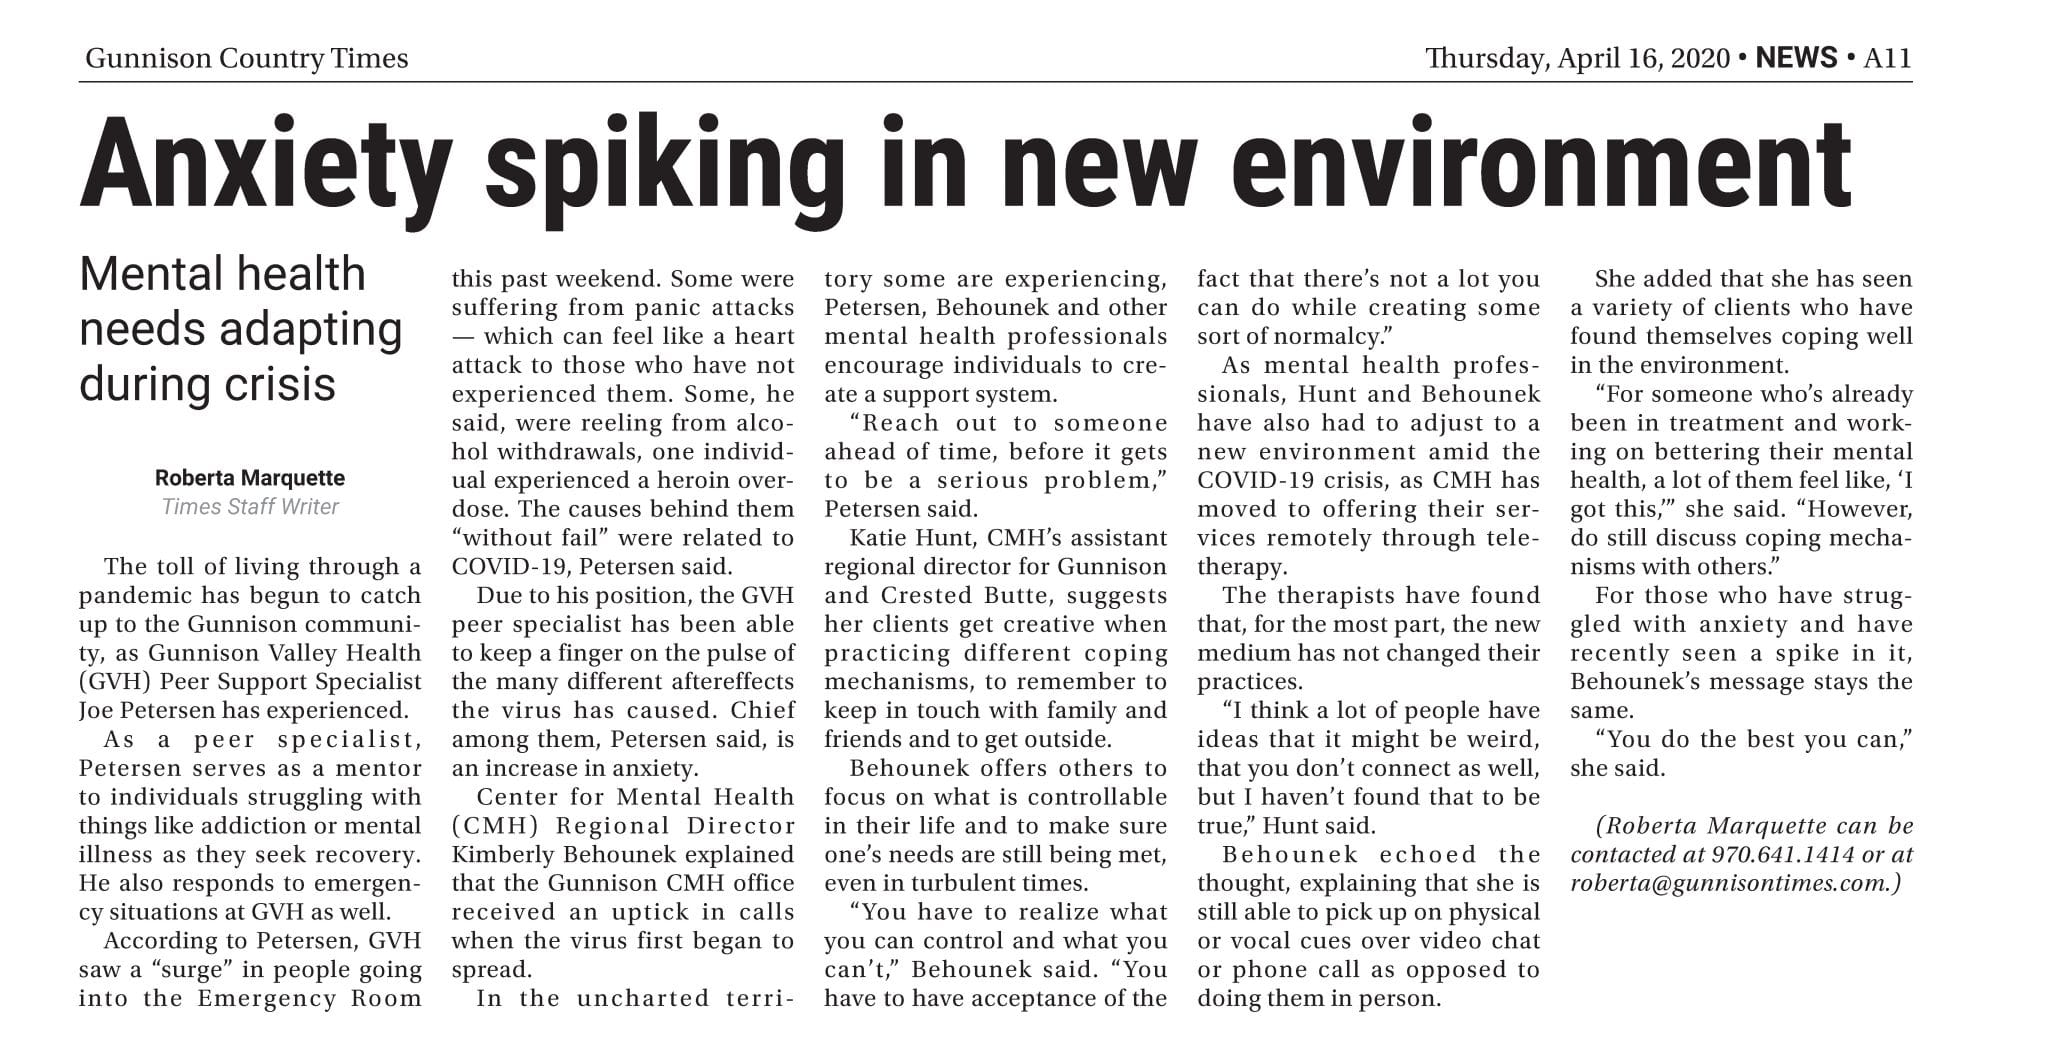 Anxiety spiking in new environment (Gunnison Country Times)